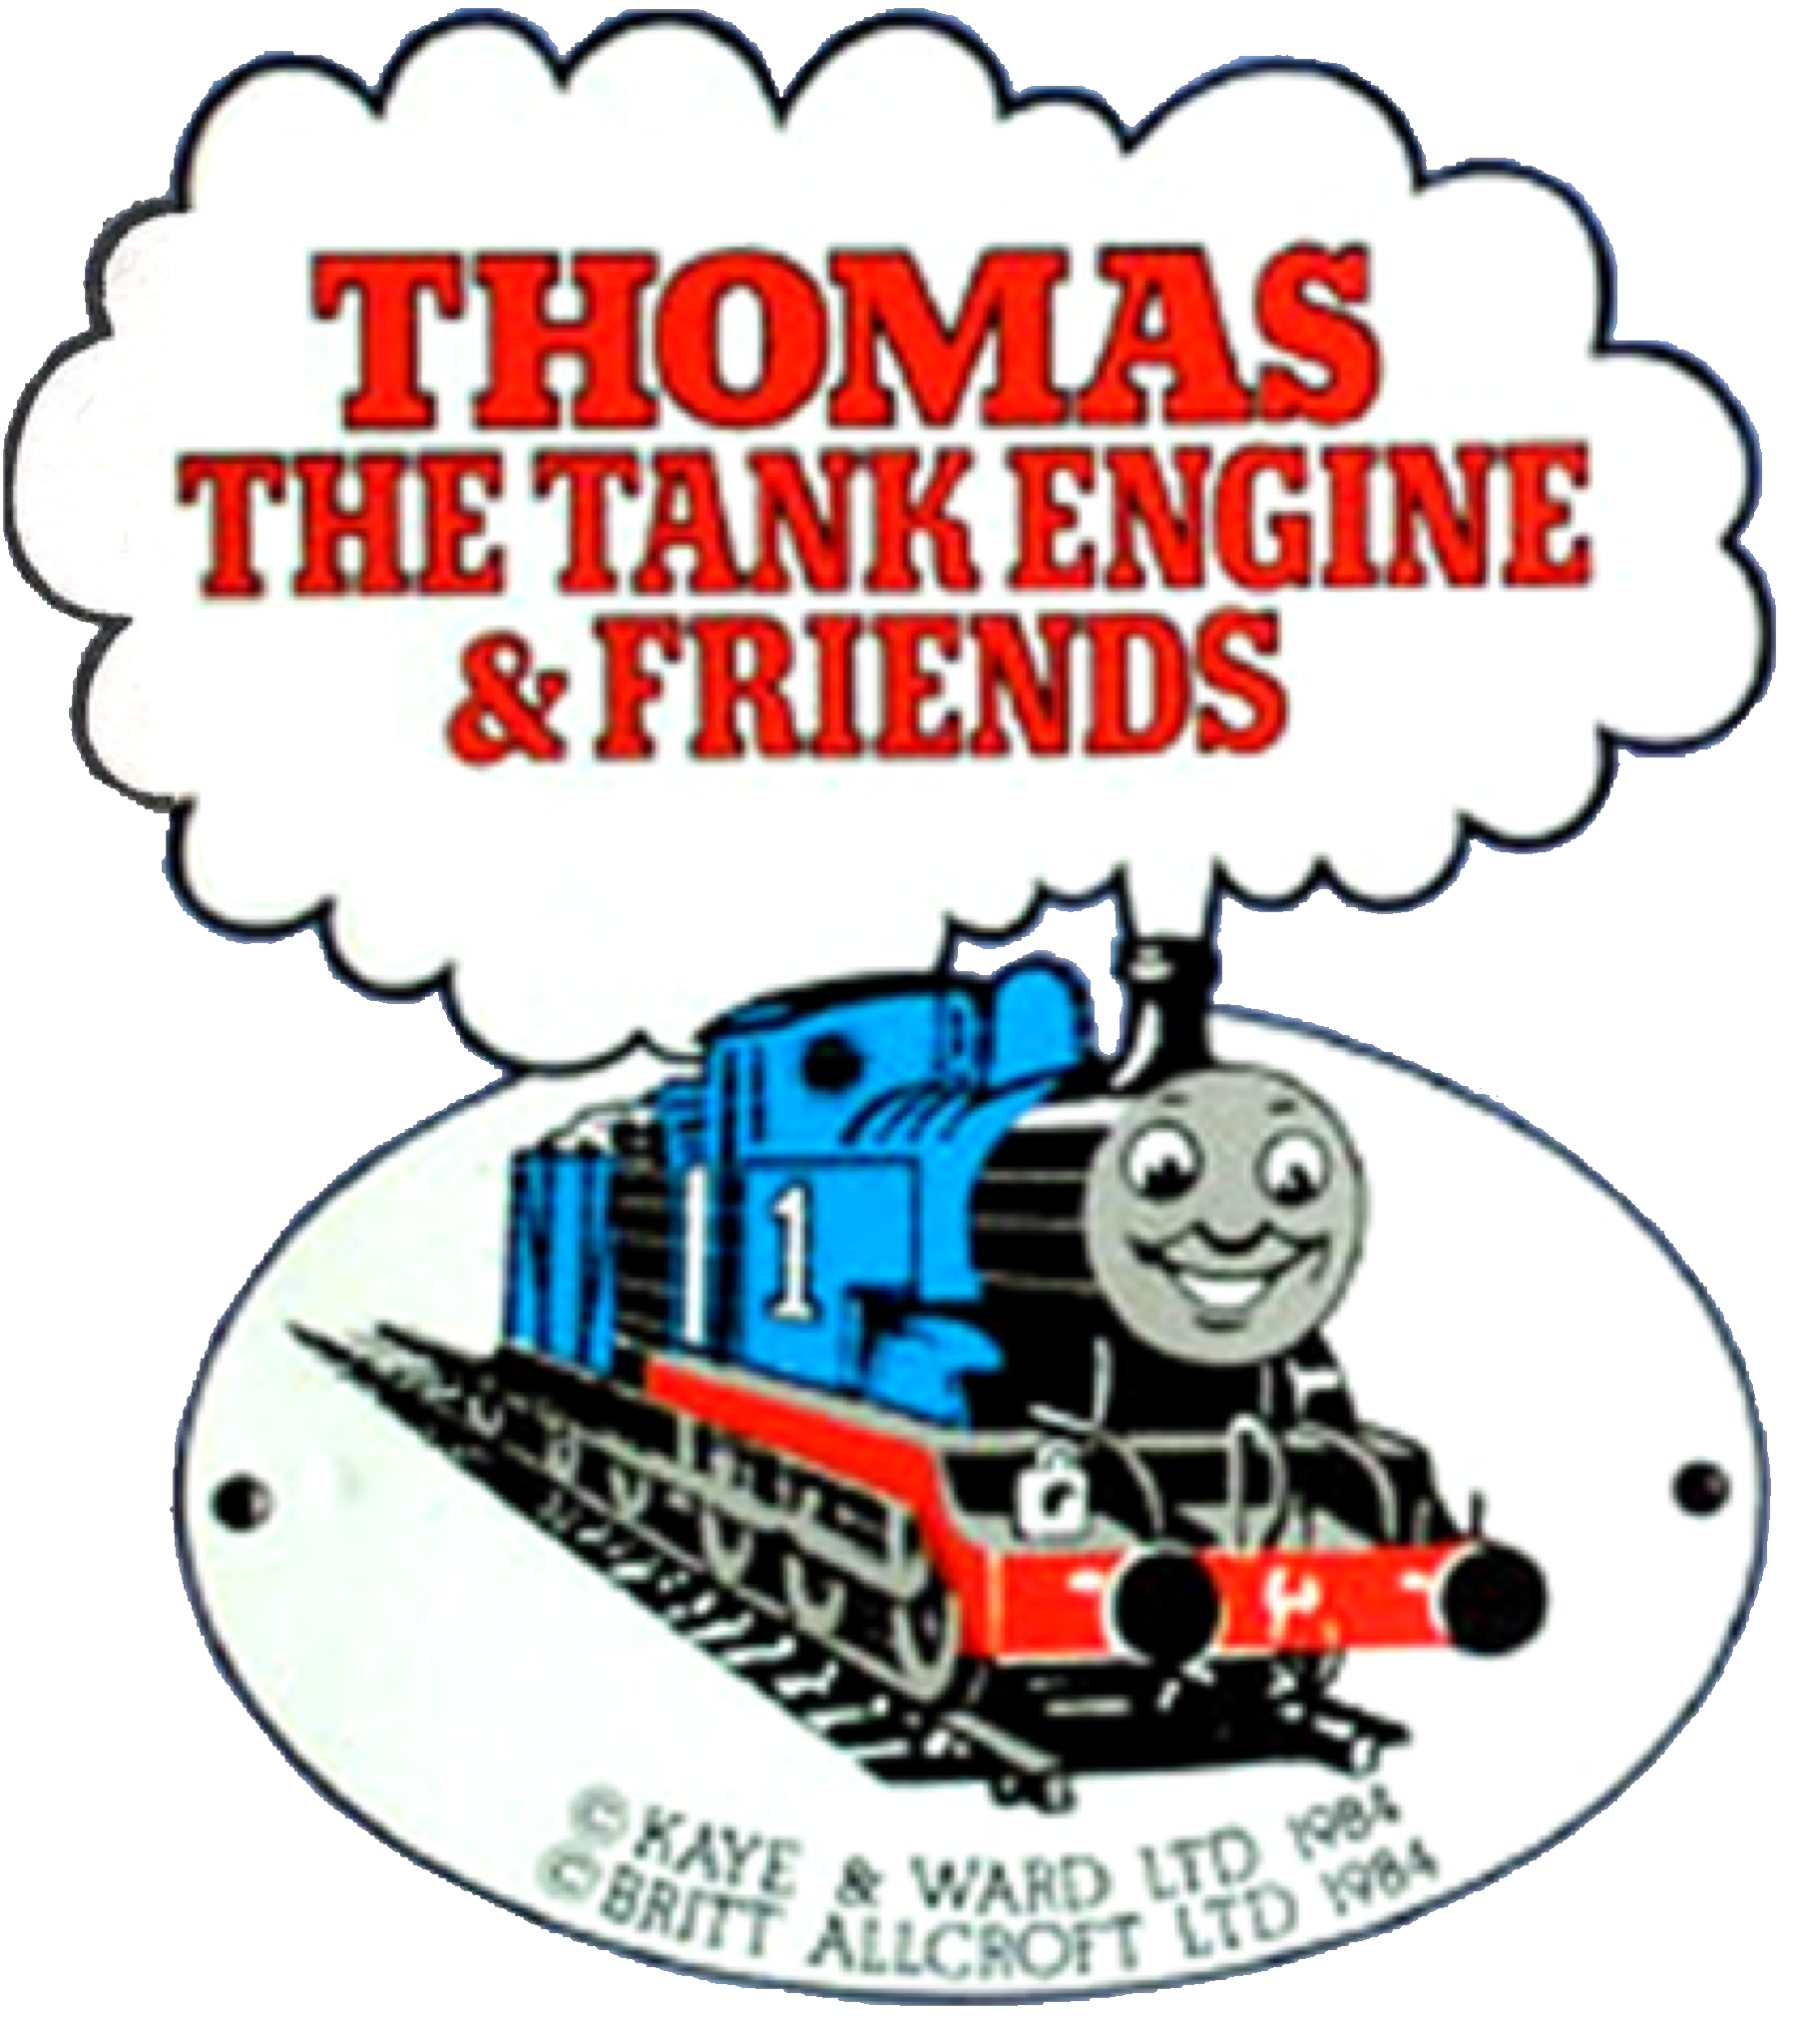 It's just an image of Unforgettable Thomas the Train Logo